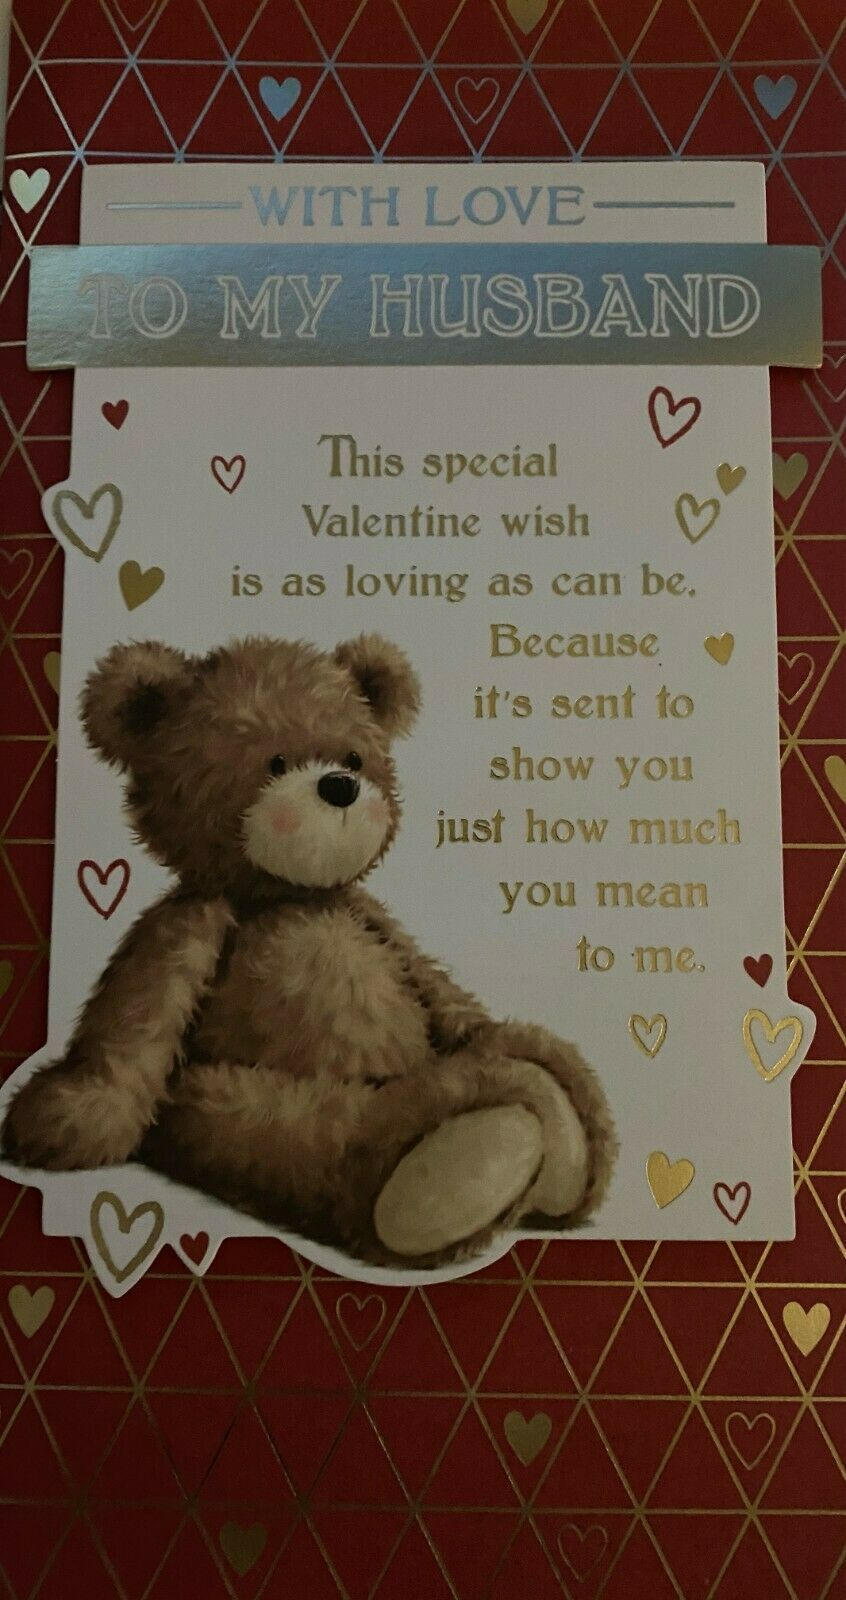 Valentine's Day Card With Love To My Husband On Valentine's Day - Teddy